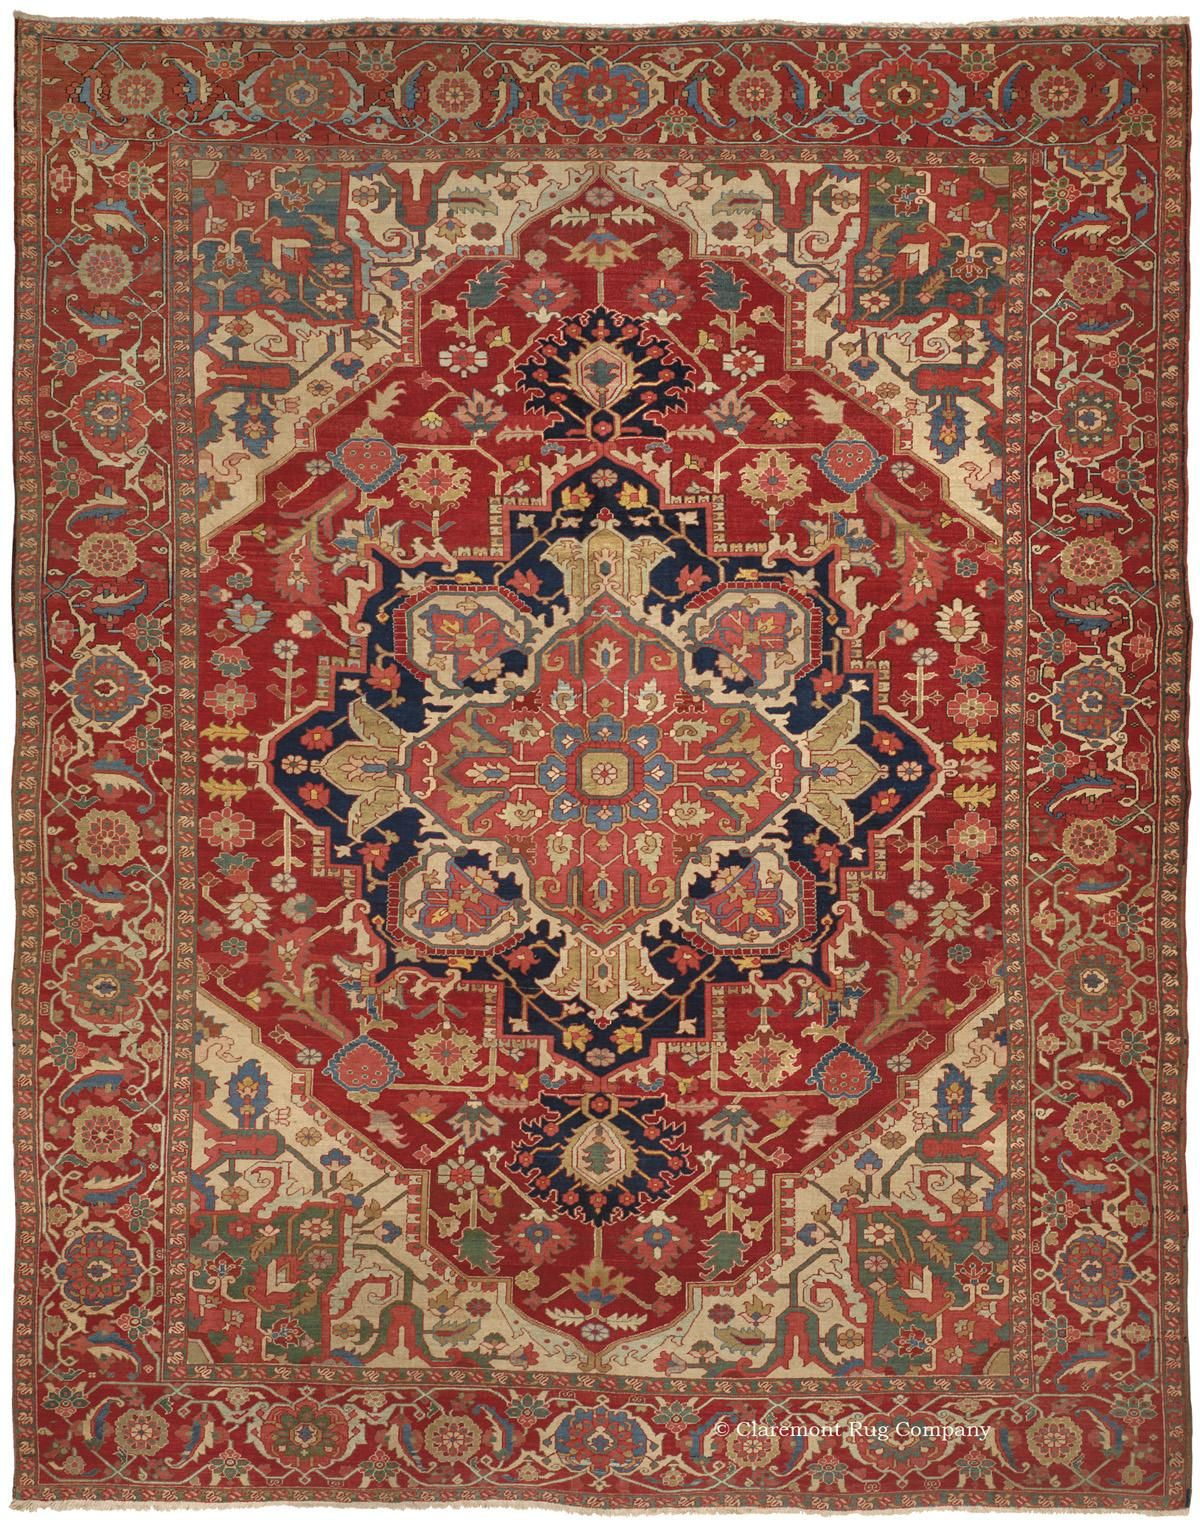 Serapi Northwest Persian 10ft 0in X 12ft 9in Circa 1900 Persian Rug Rugs On Carpet Rugs